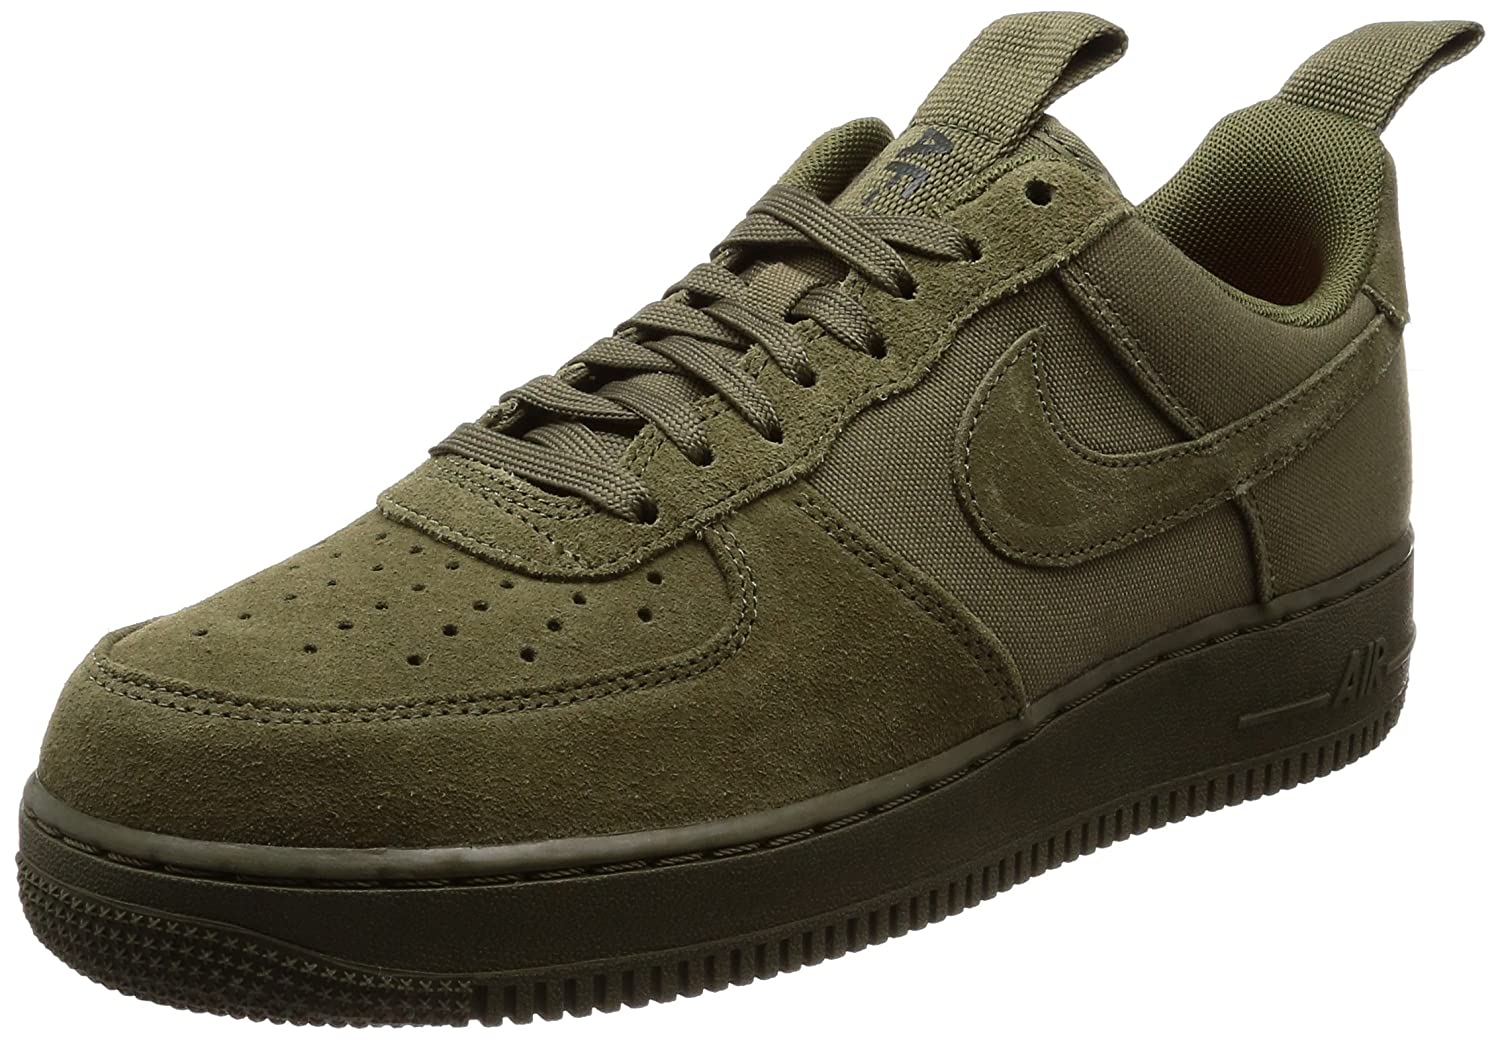 3015995fd64c Nike Herren Air Force 1 07 Oliv Leder Synthetik Textil Sneaker 43 EU Oliv  (Medium Olive Sequoia Rush Orange) - sommerprogramme.de